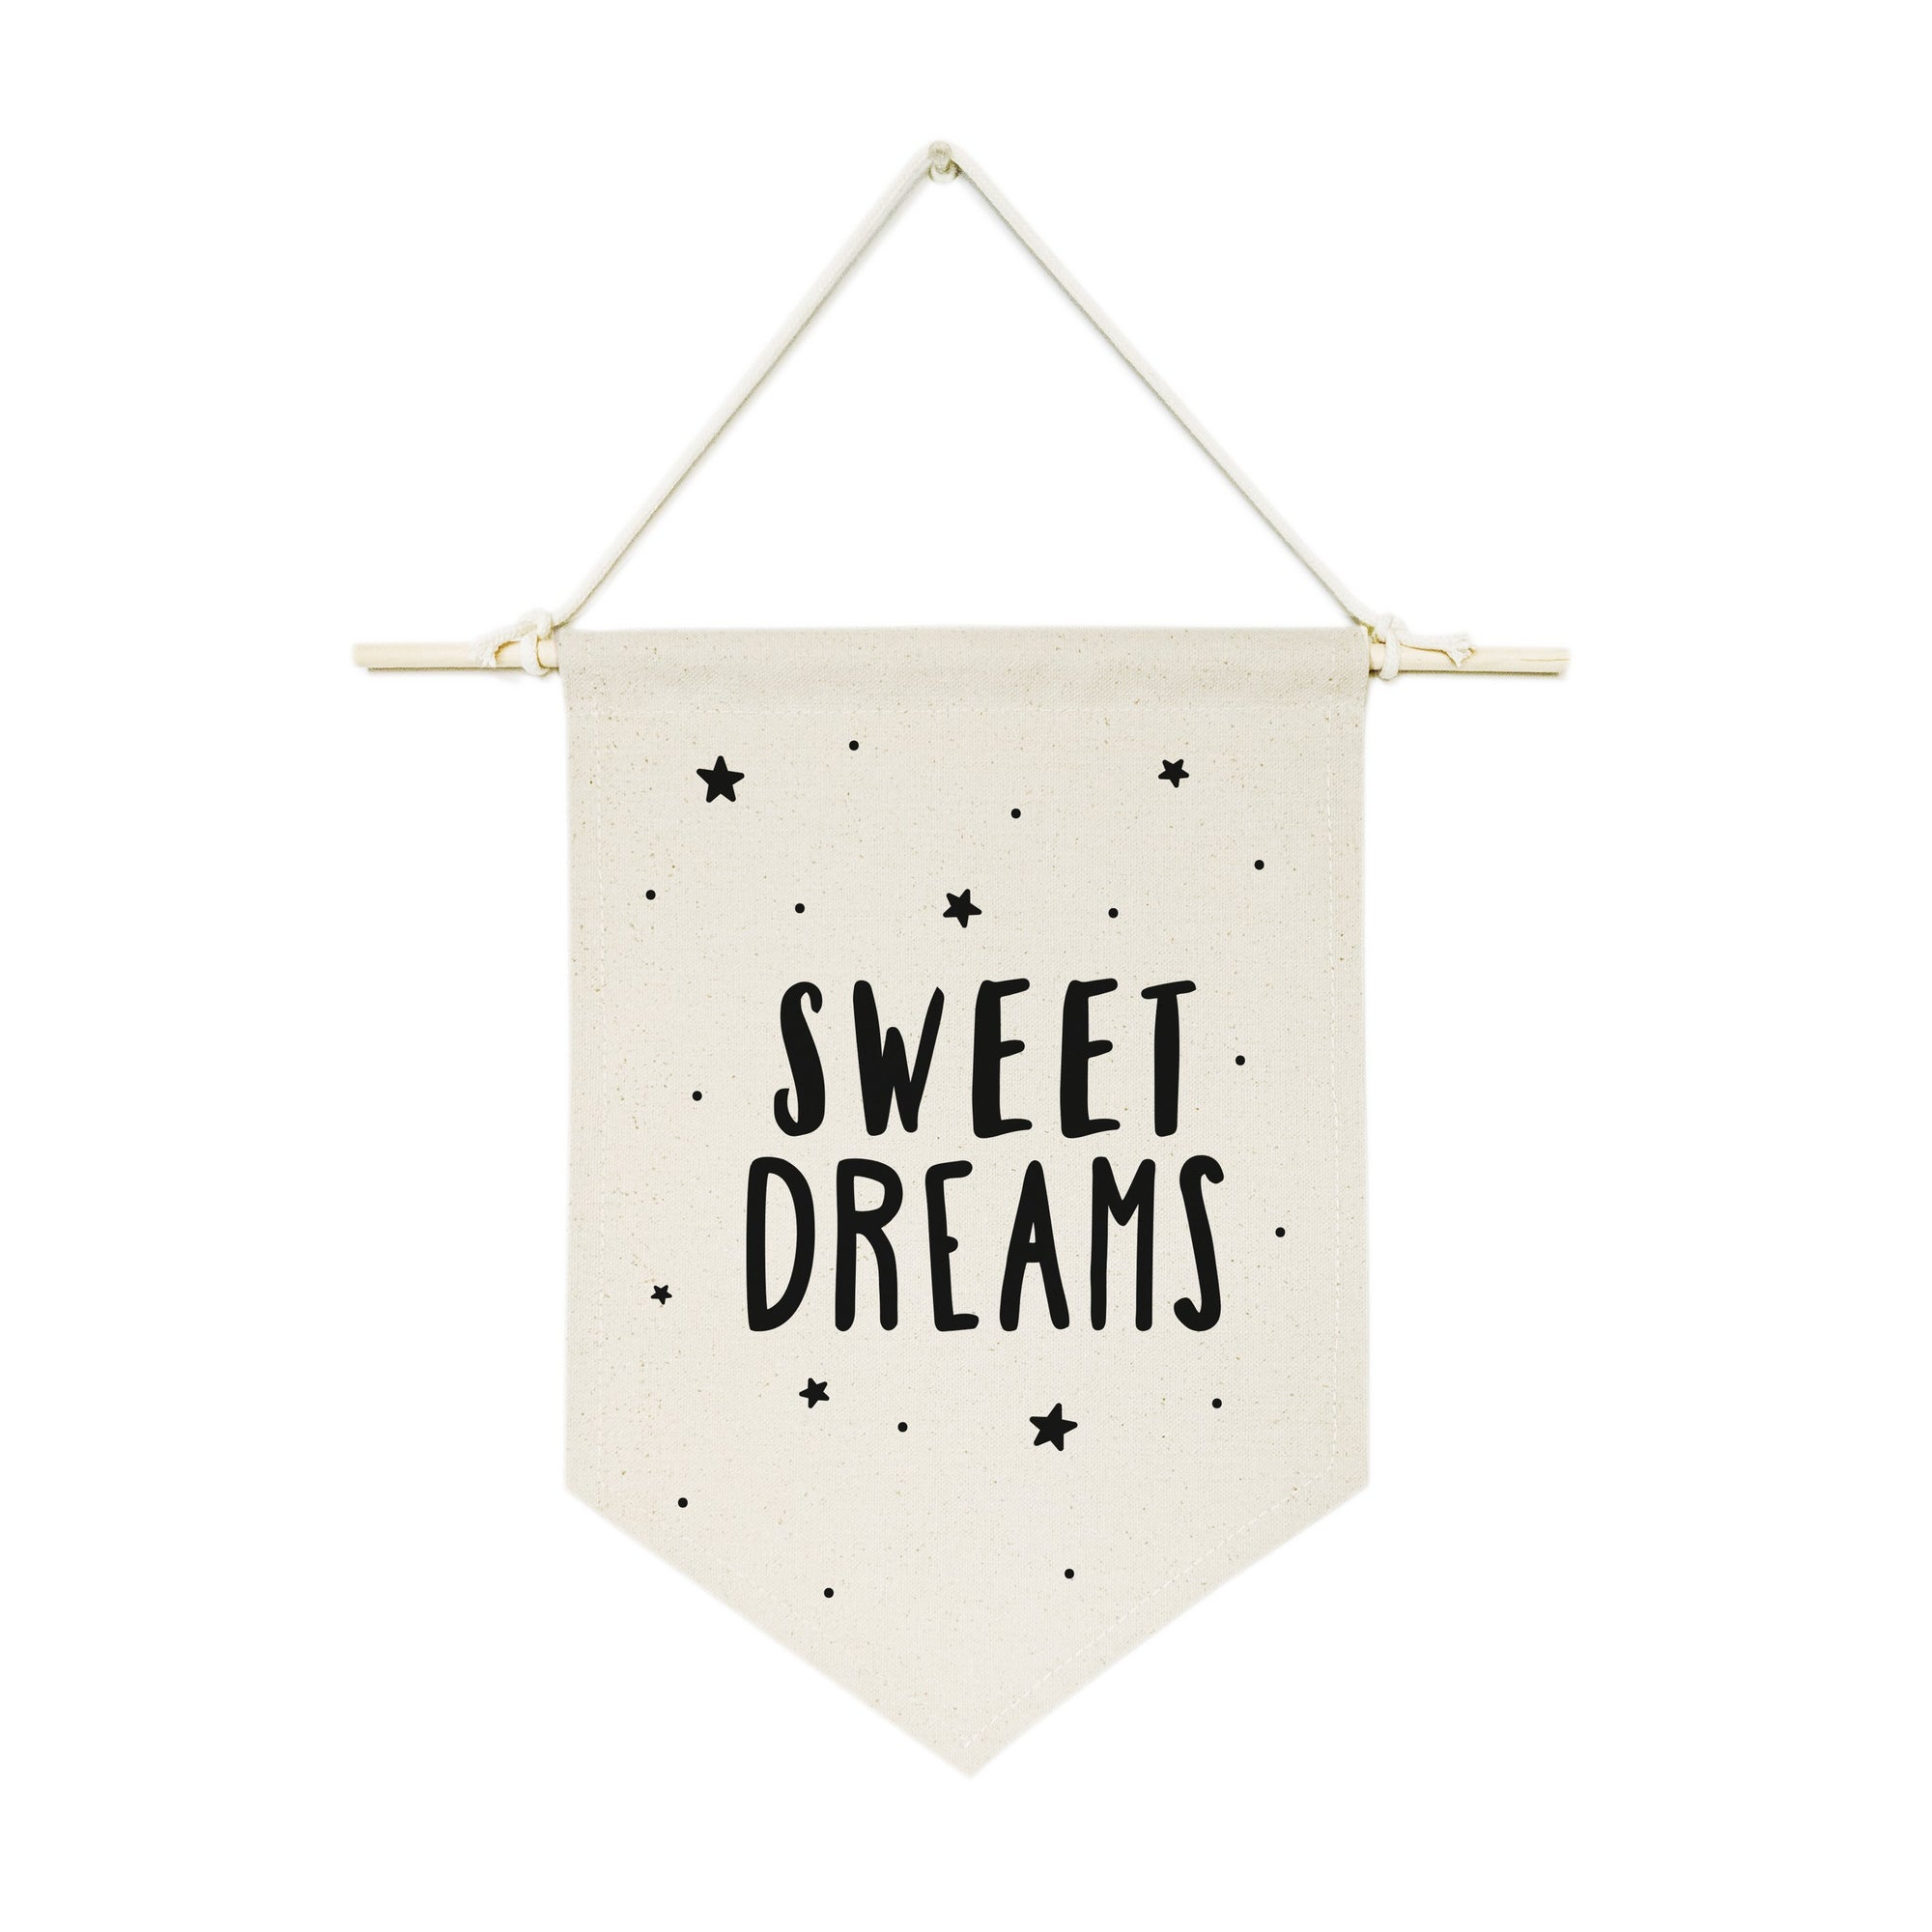 Sweet Dreams with Stars Hanging Wall Banner